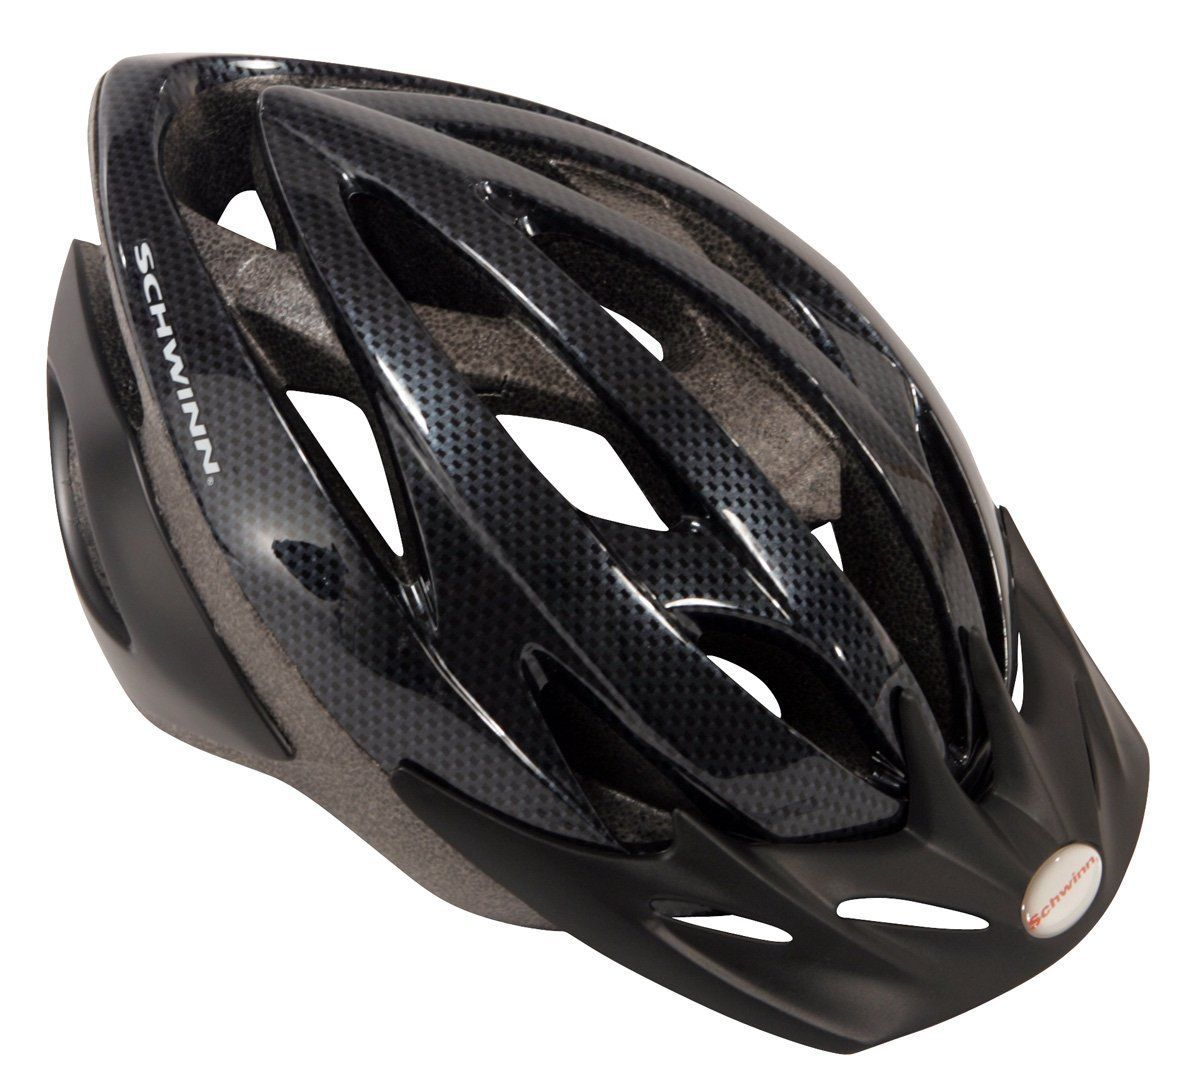 Schwinn Thrasher Adult Micro Bicycle Black Grey Helmet Adult